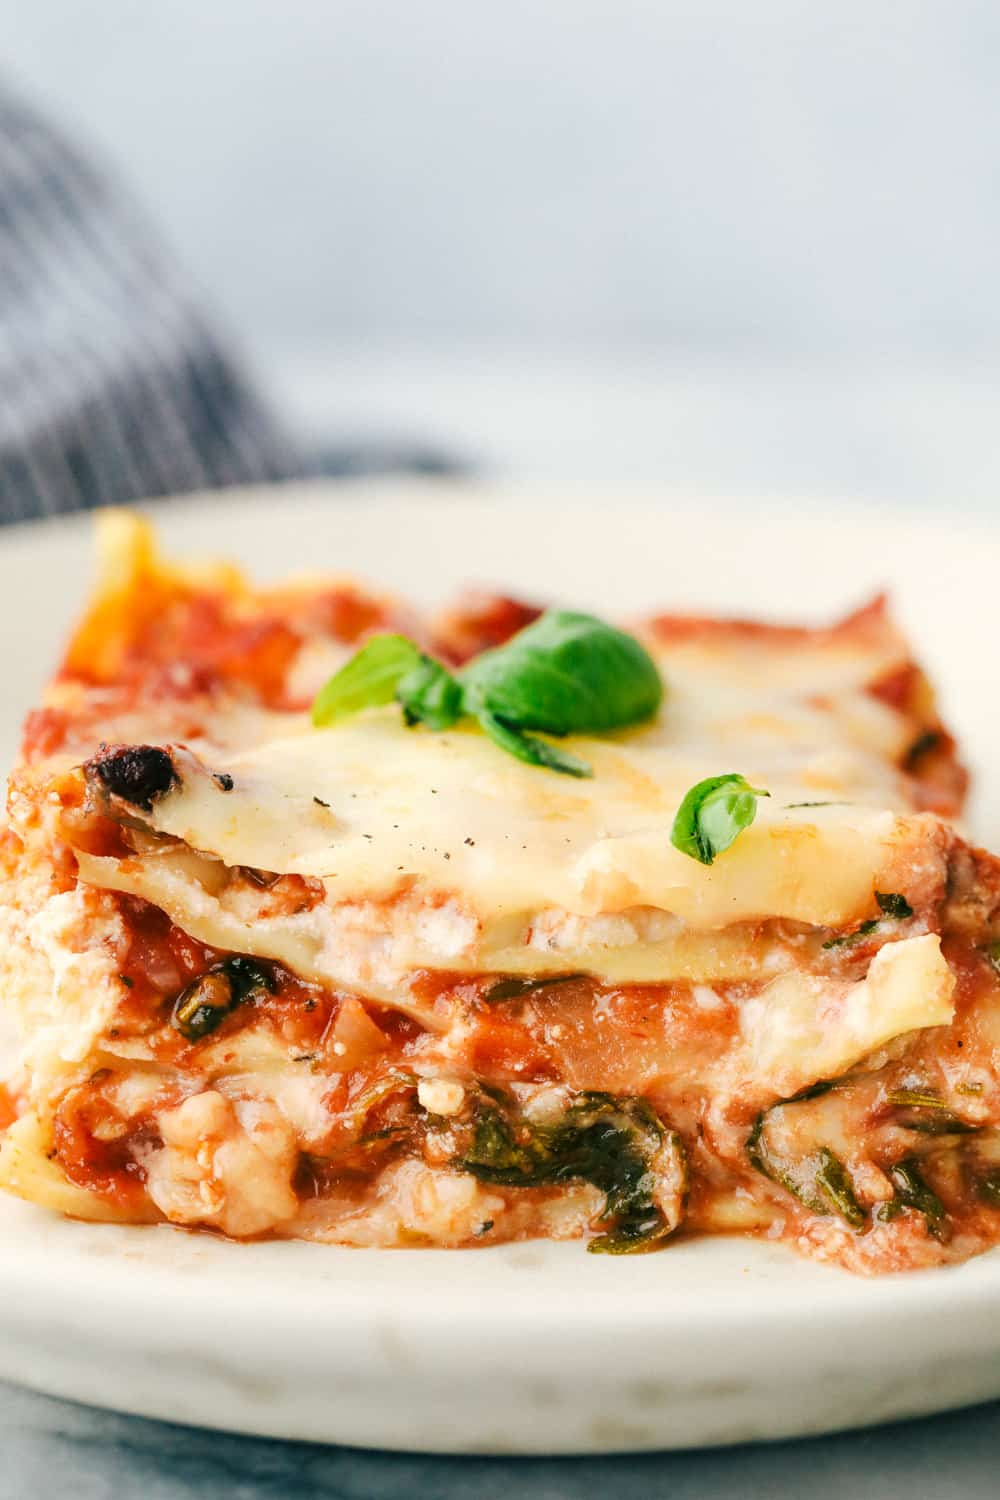 Plated vegetable lasagna with cheese, noodles and sauce.